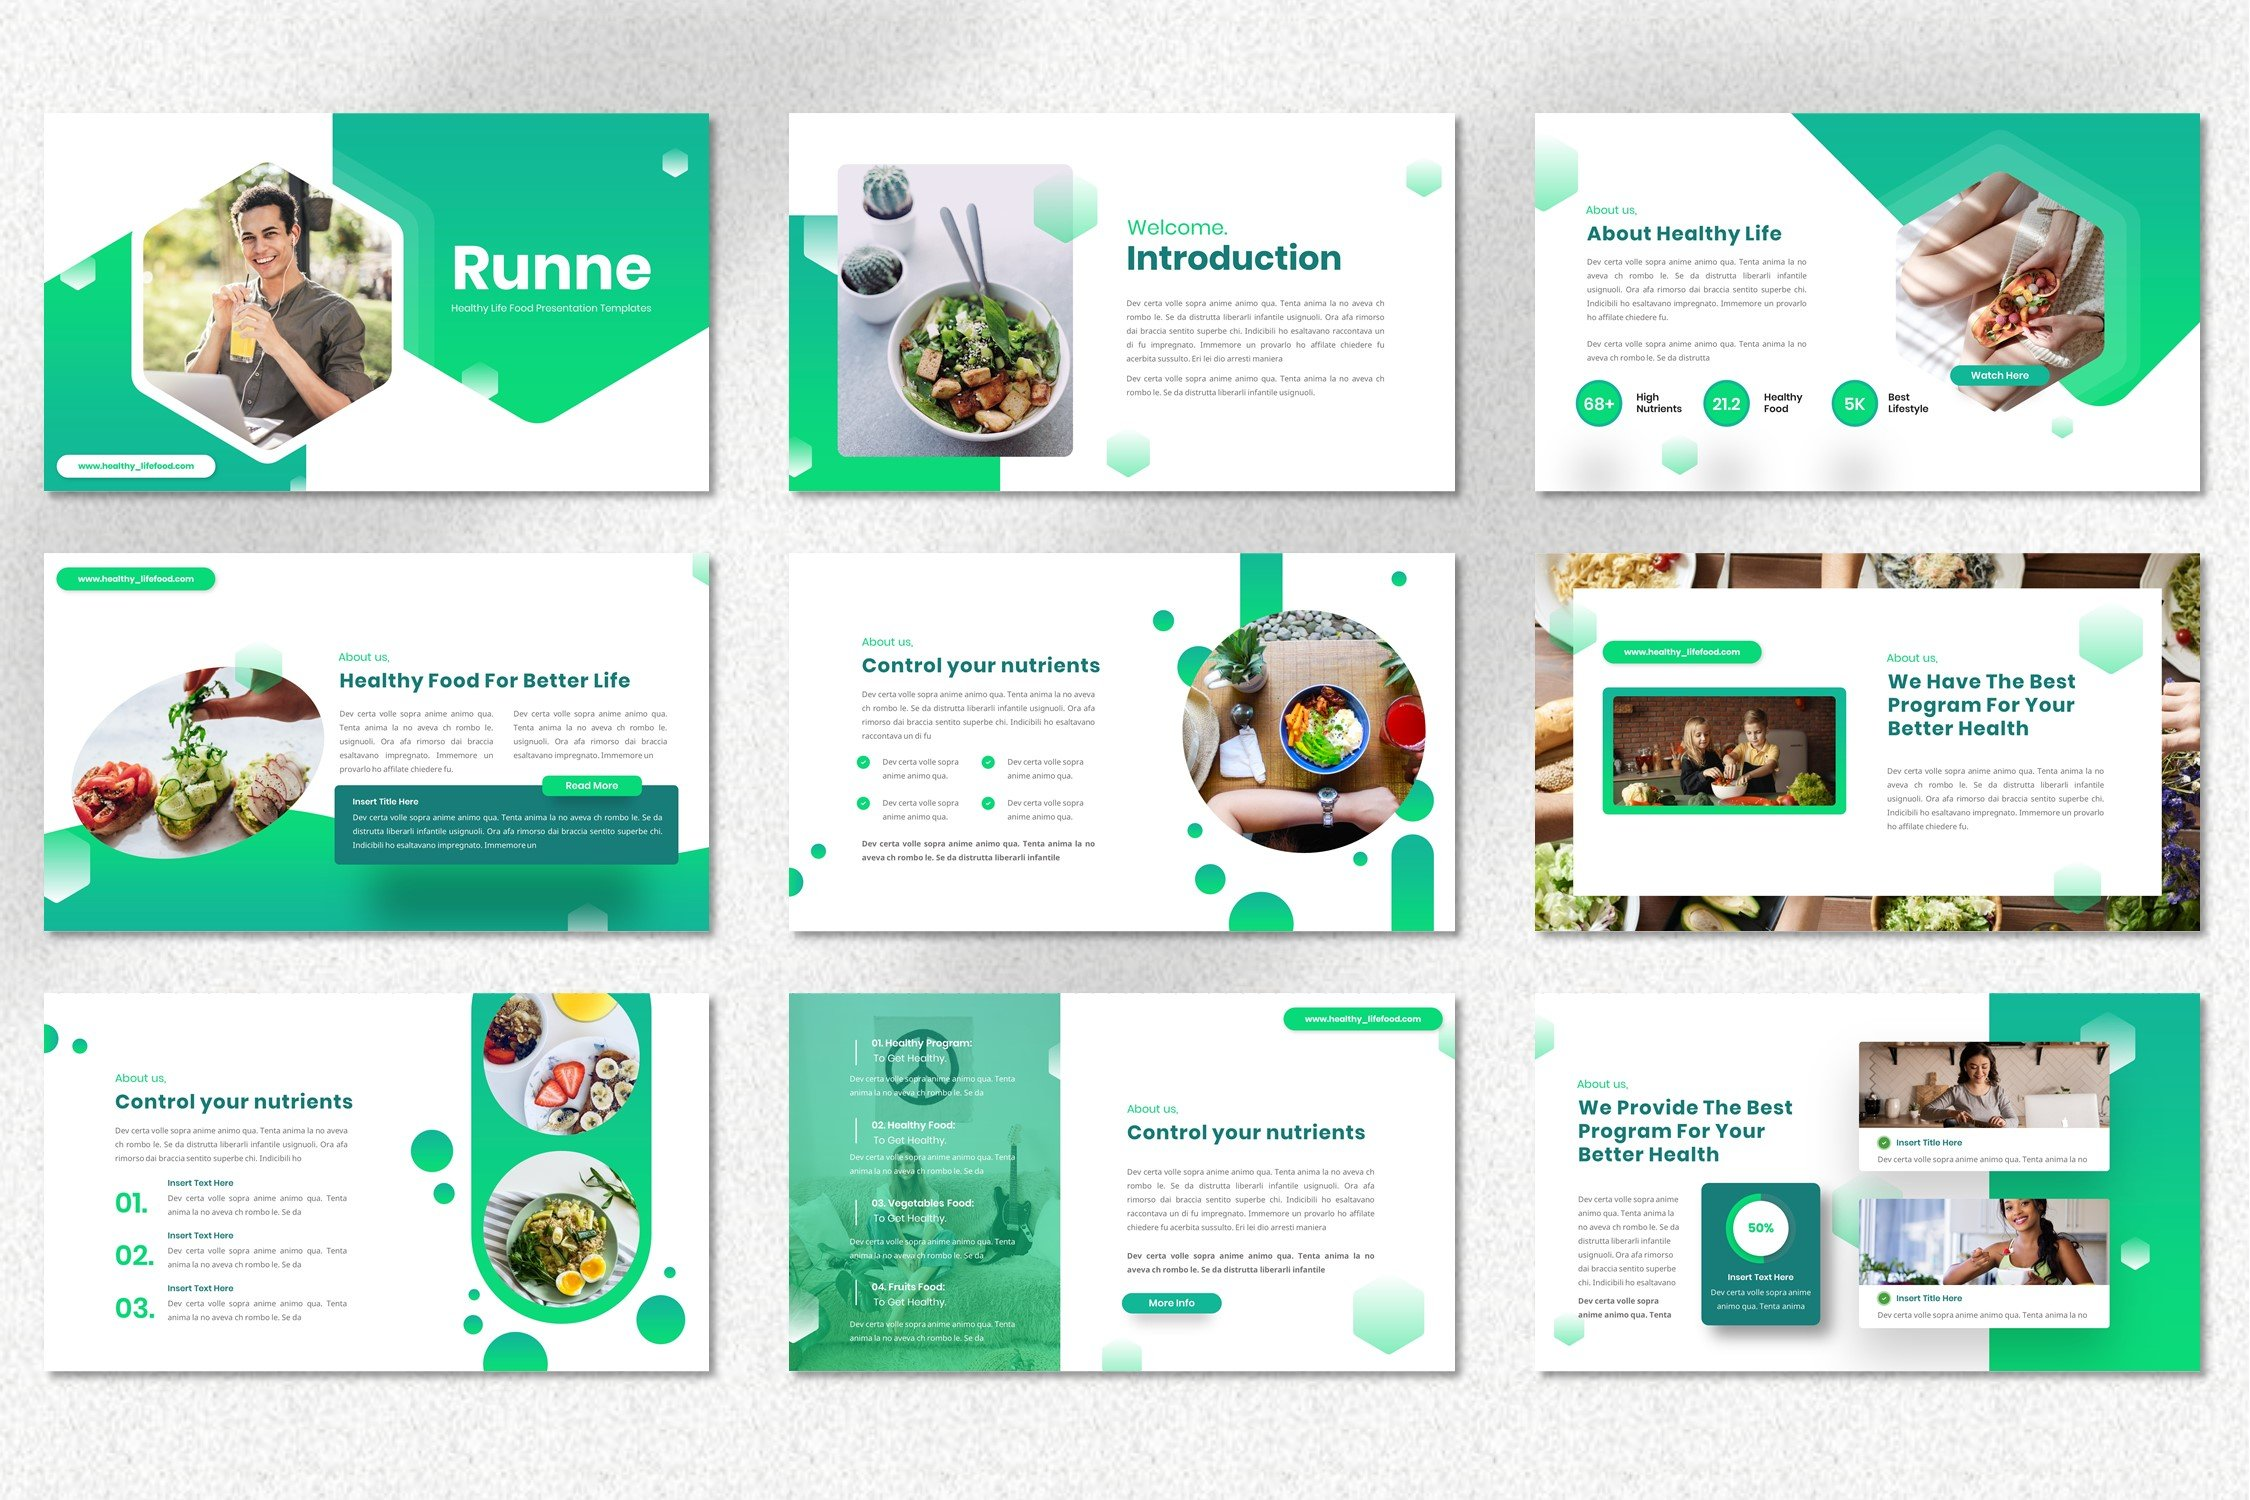 Template includes the unusual geometric shapes for images.